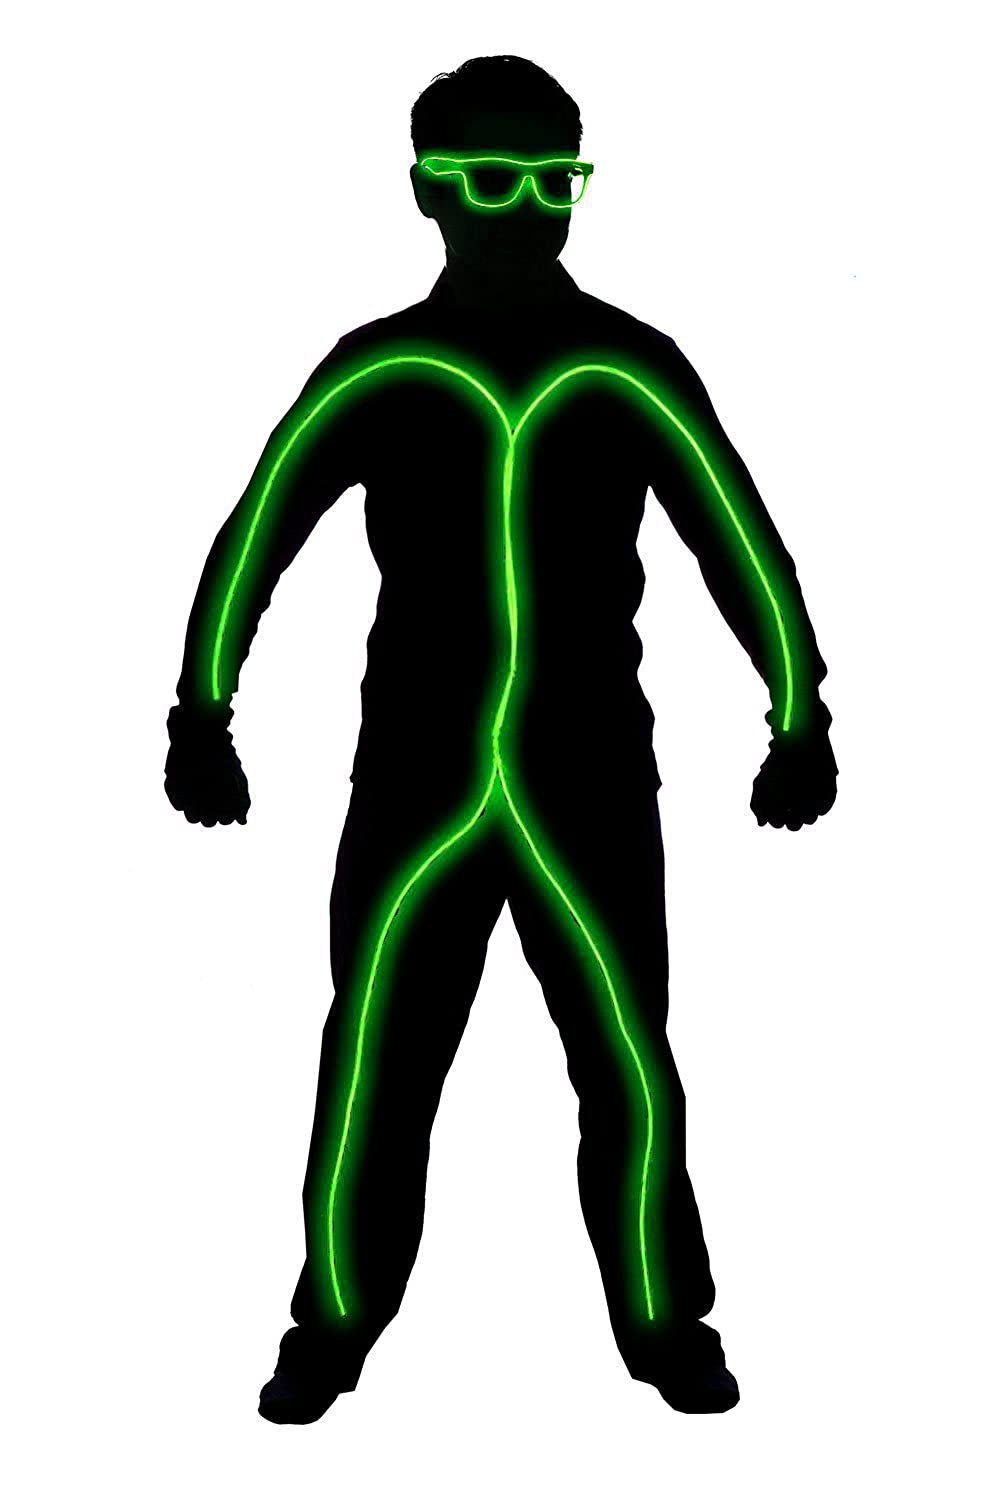 Superior Amazon.com: Light Up Stick Figure Costume Kit Includes Lights,Shades Clothing  Not Included: Clothing